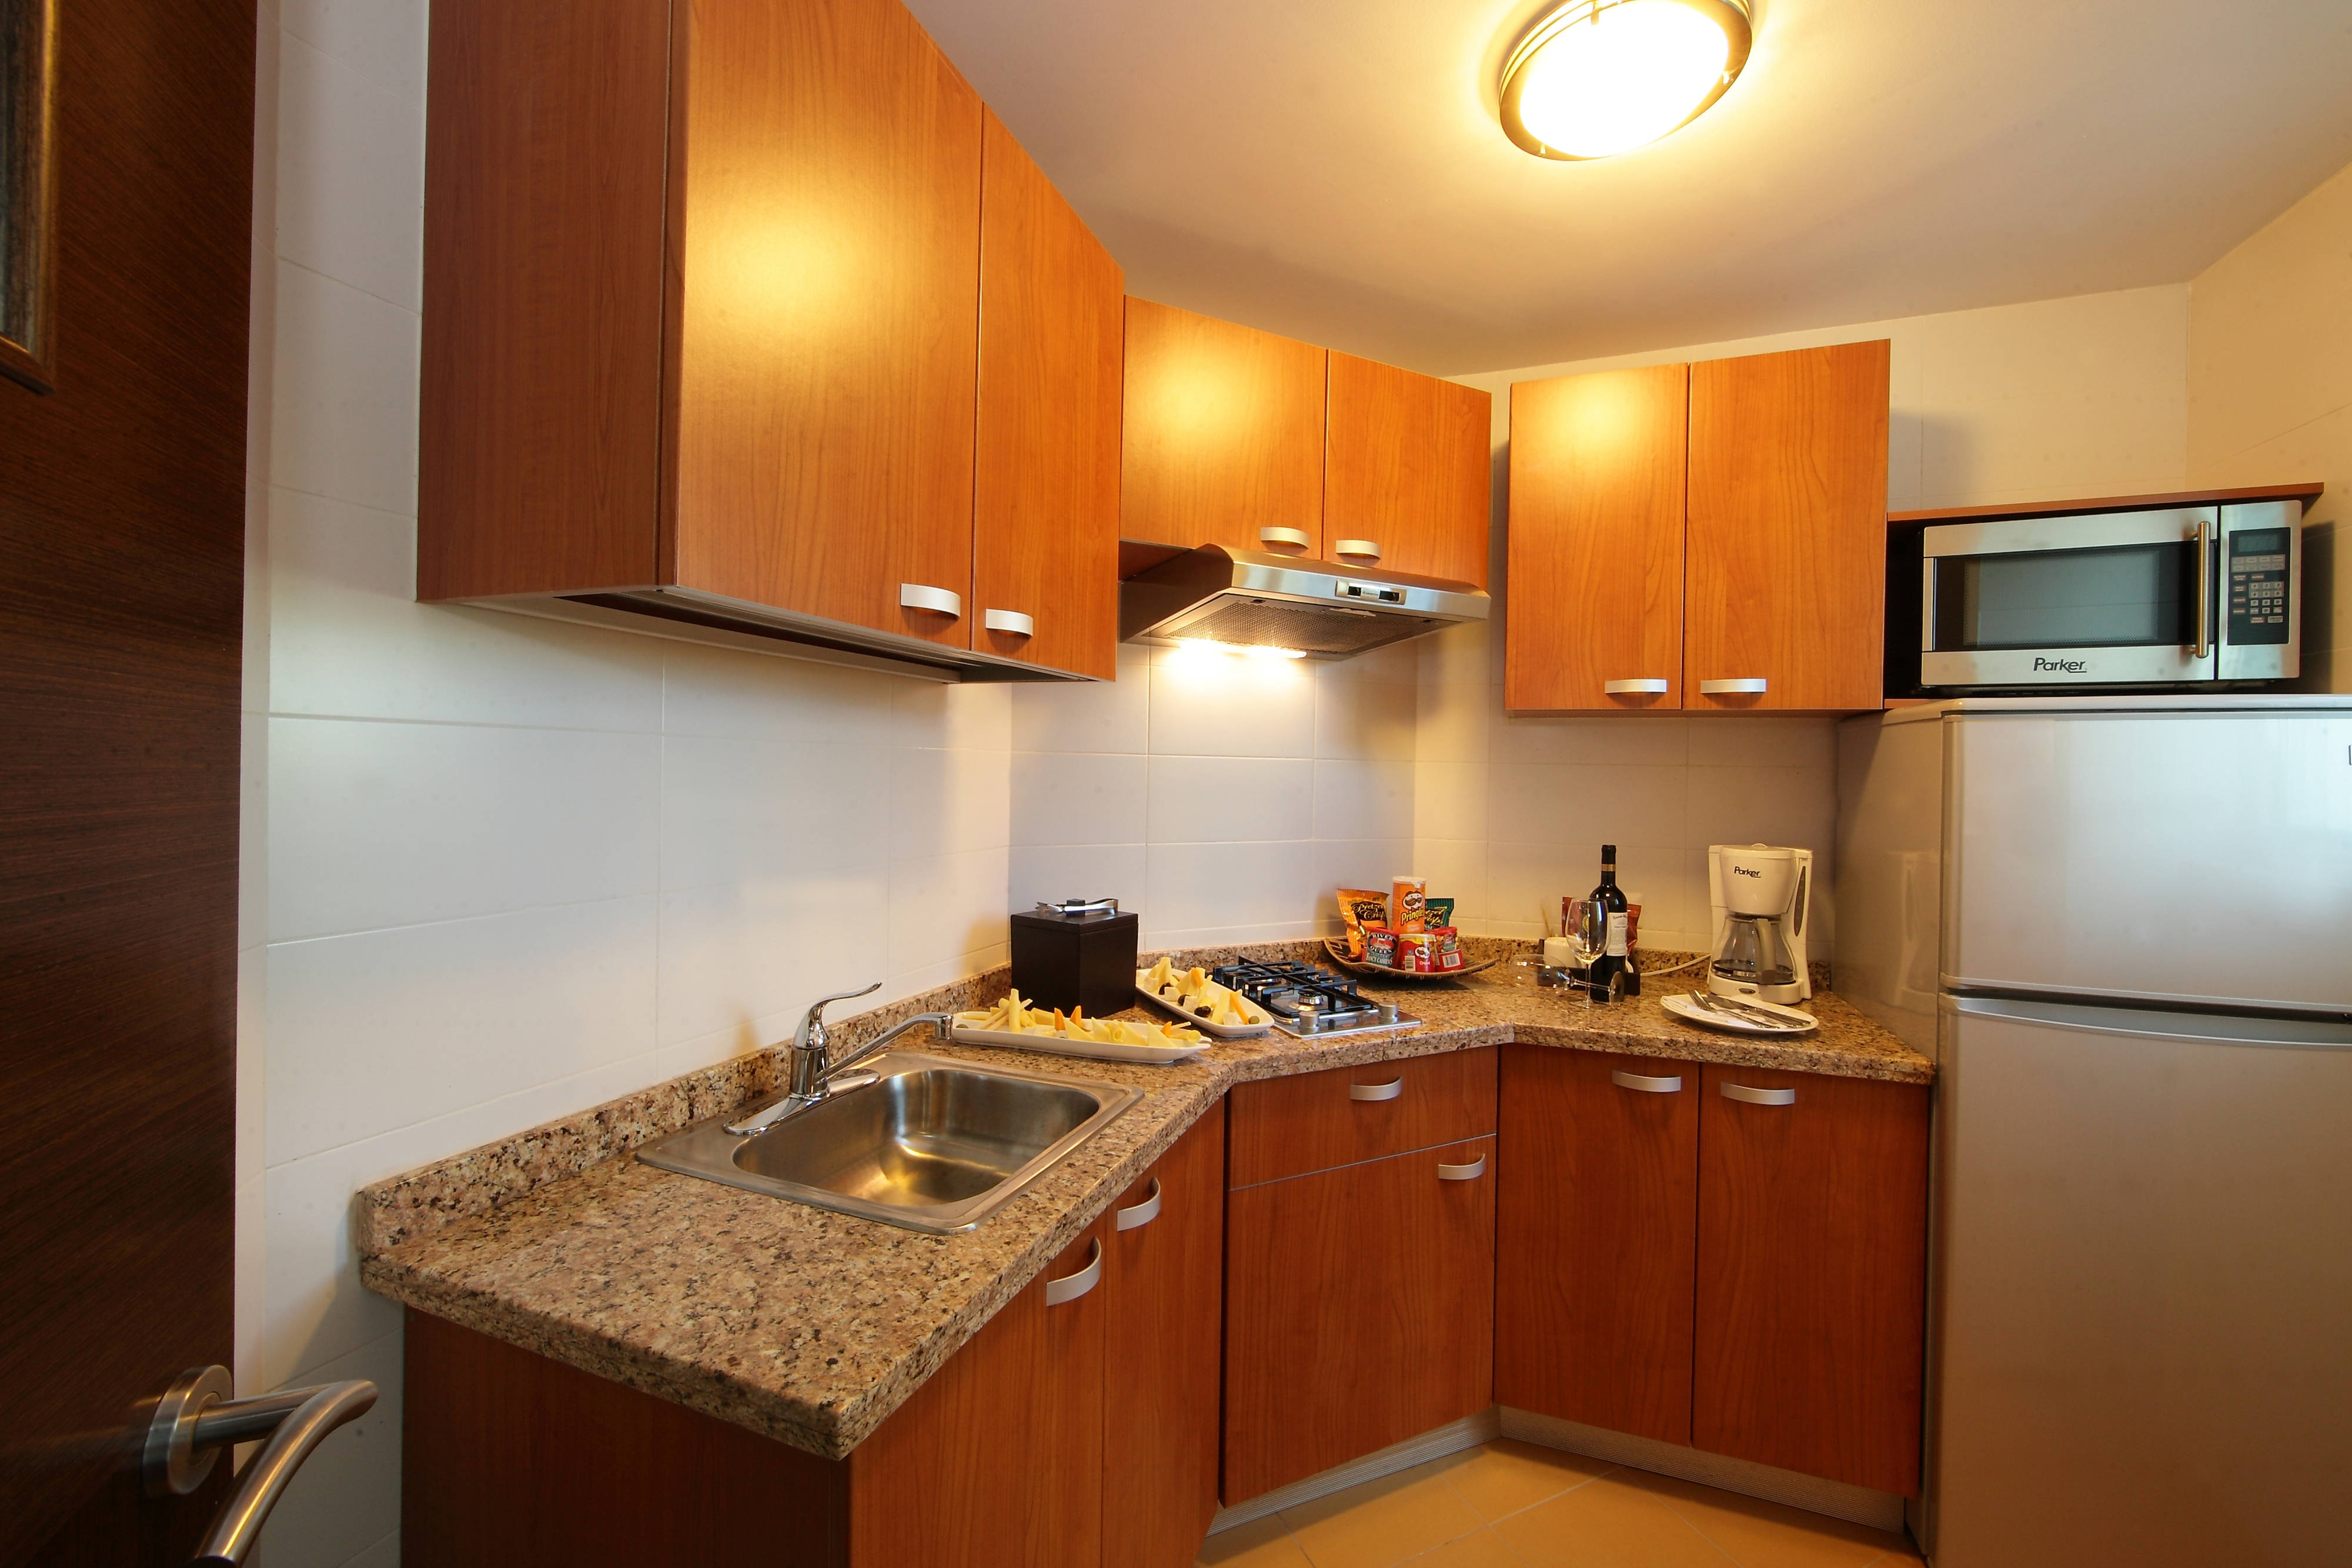 Panama City Apartments Kitchenette